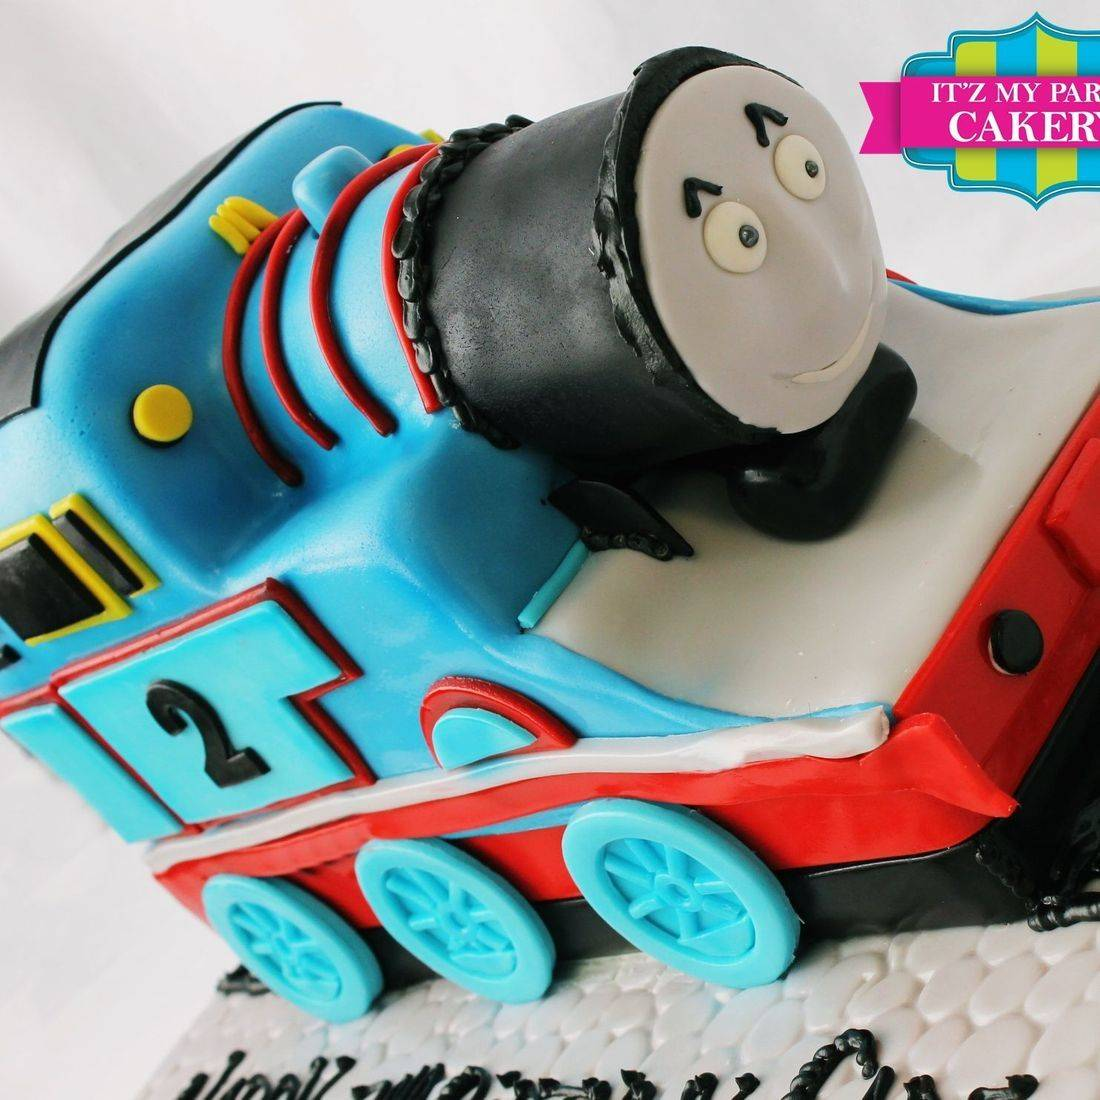 Thomas The Train Carved Dimensional Cake Milwaukee